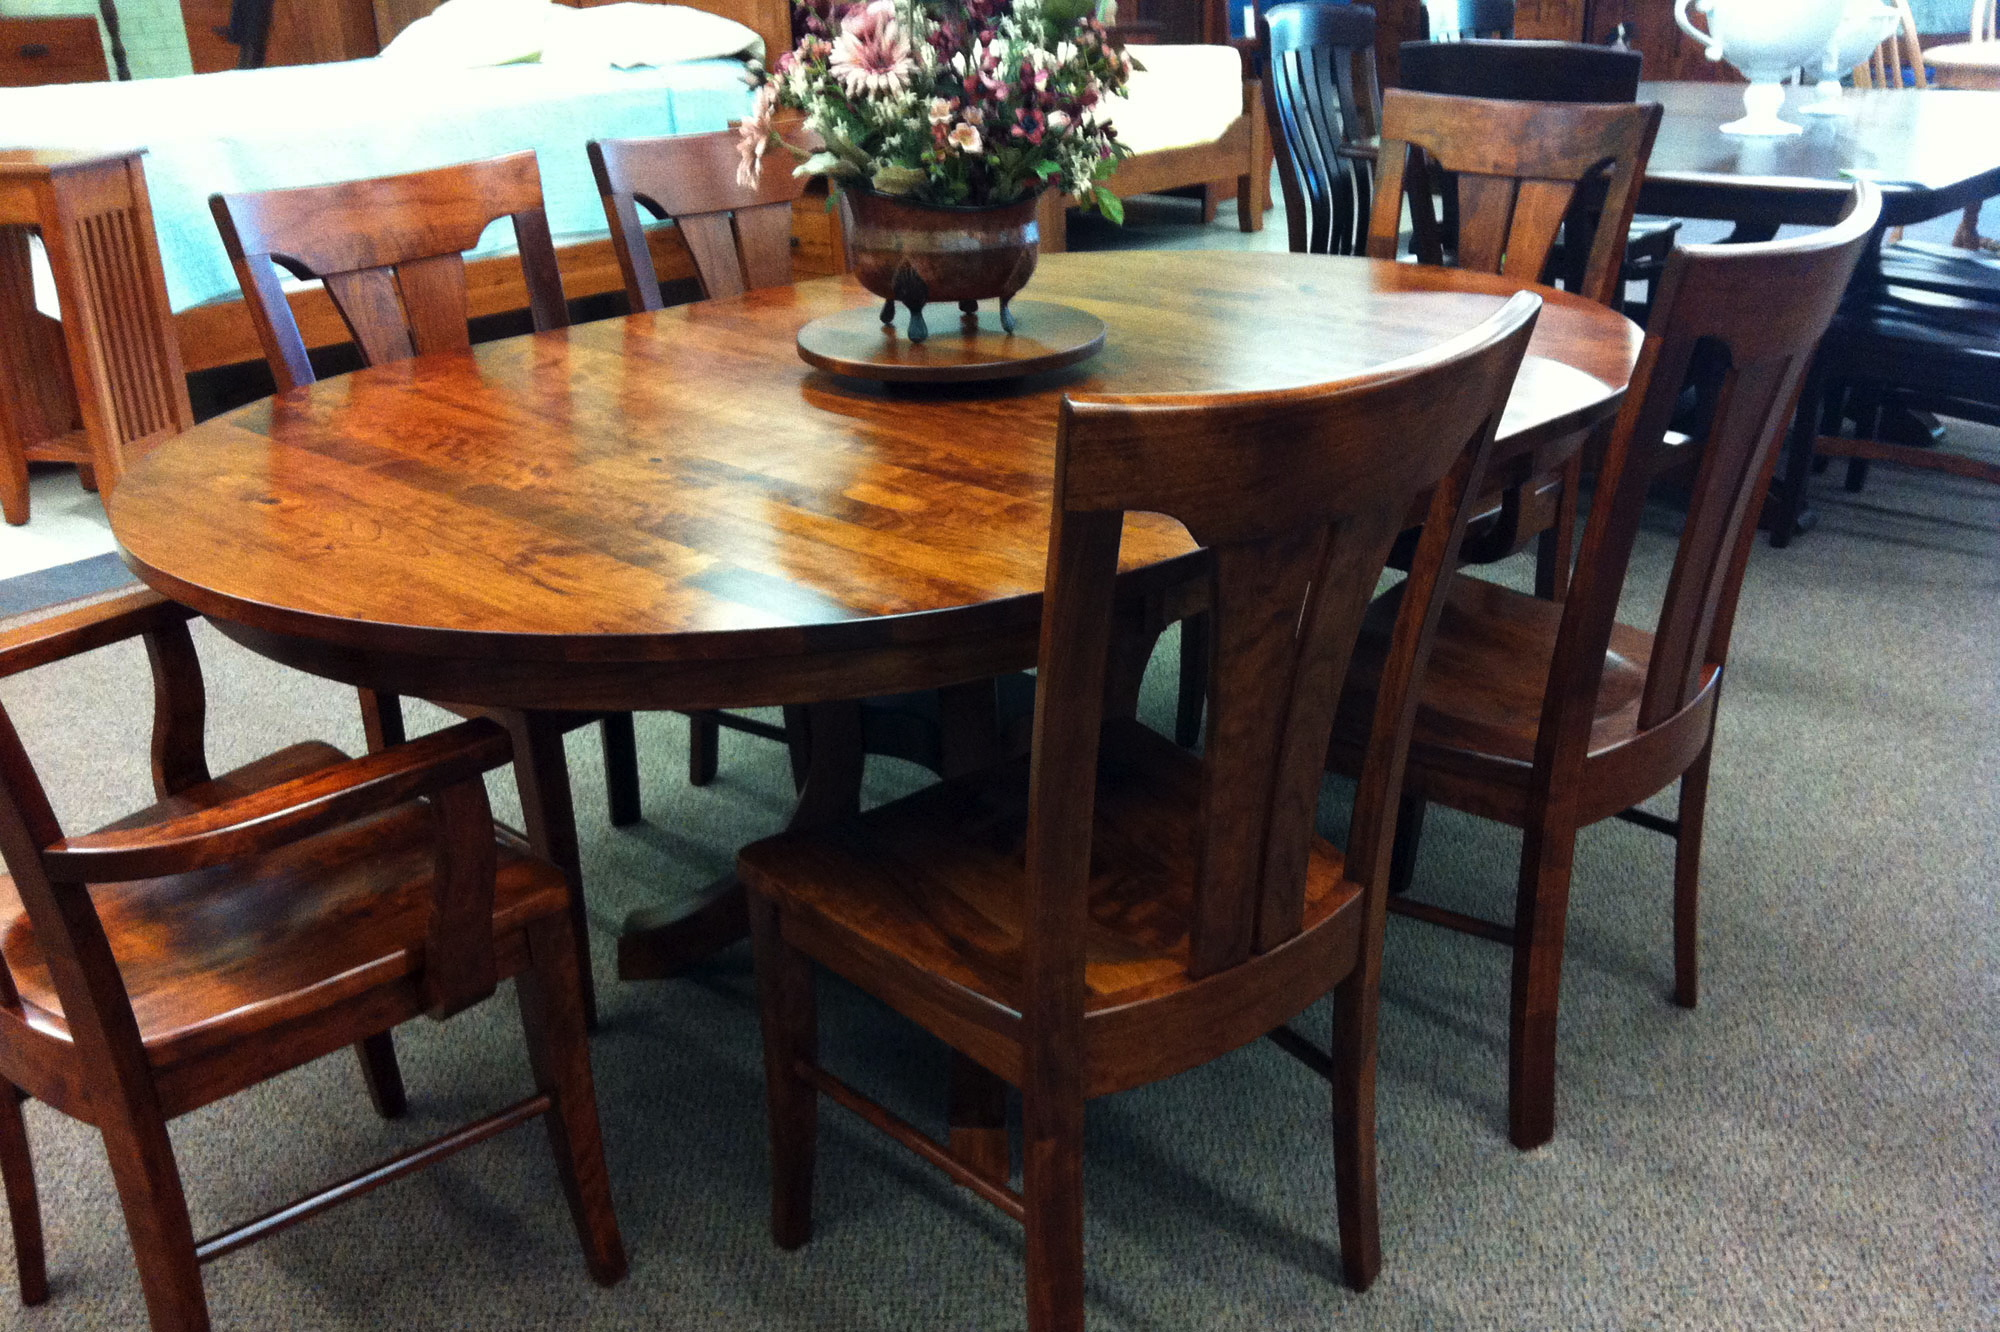 Highest Quality Amish Furniture Angelica New York | Amish Furniture  Angelica New York